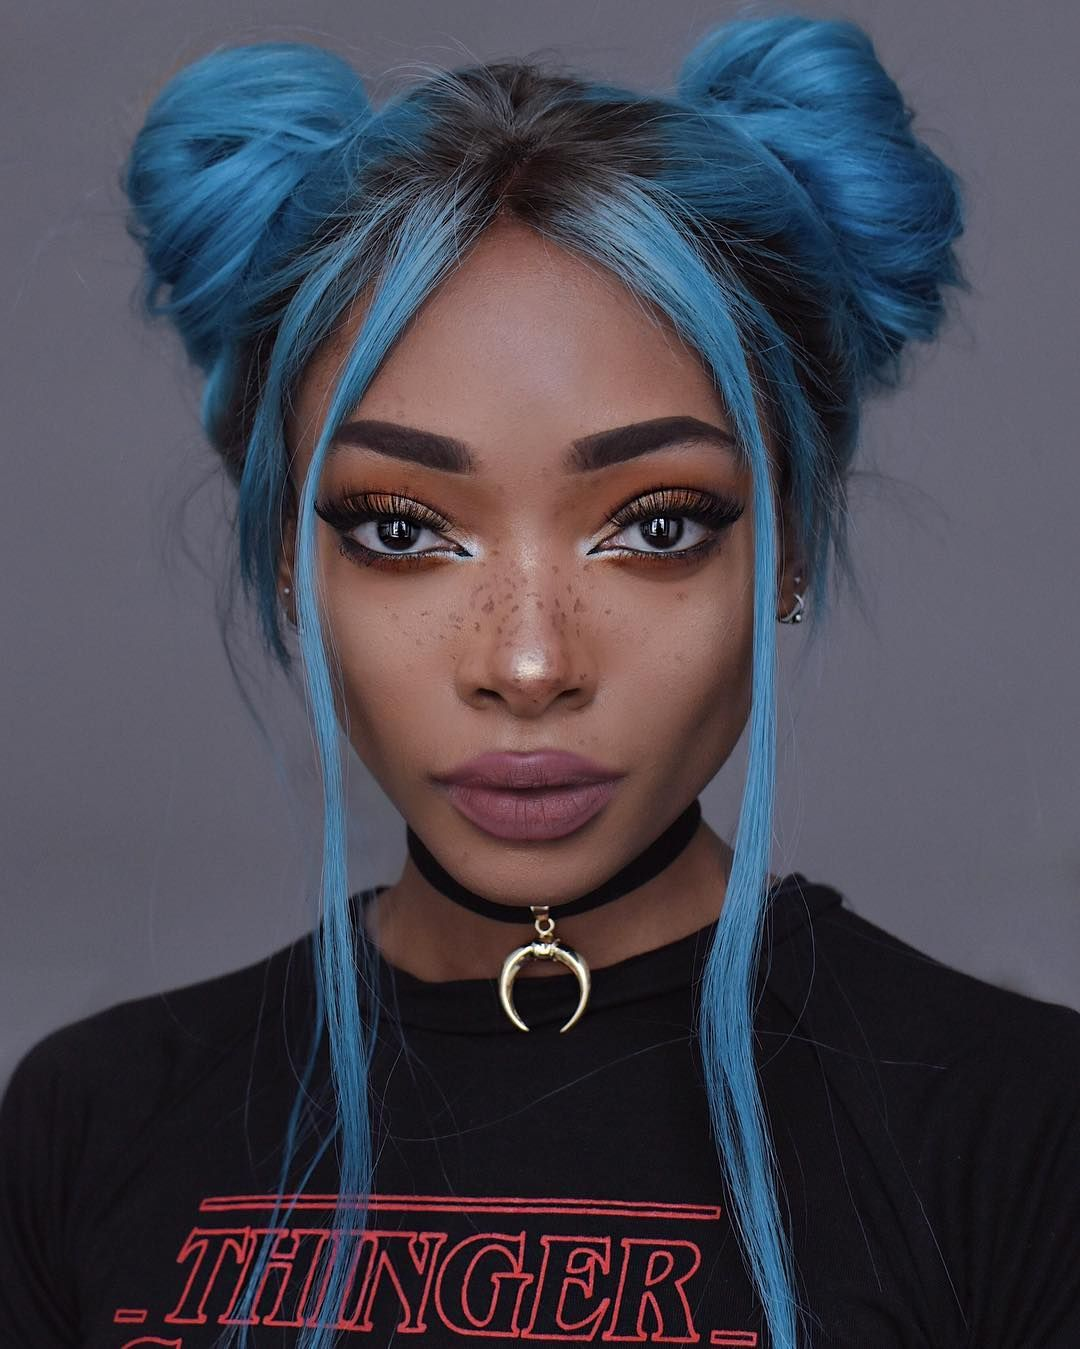 34 3k Likes 419 Comments Nyane Lebajoa Nyanelebajoa On Instagram Blue Hair Just For Now The Pink Hair Will Be Hair Styles Blue Hair Trendy Hairstyles